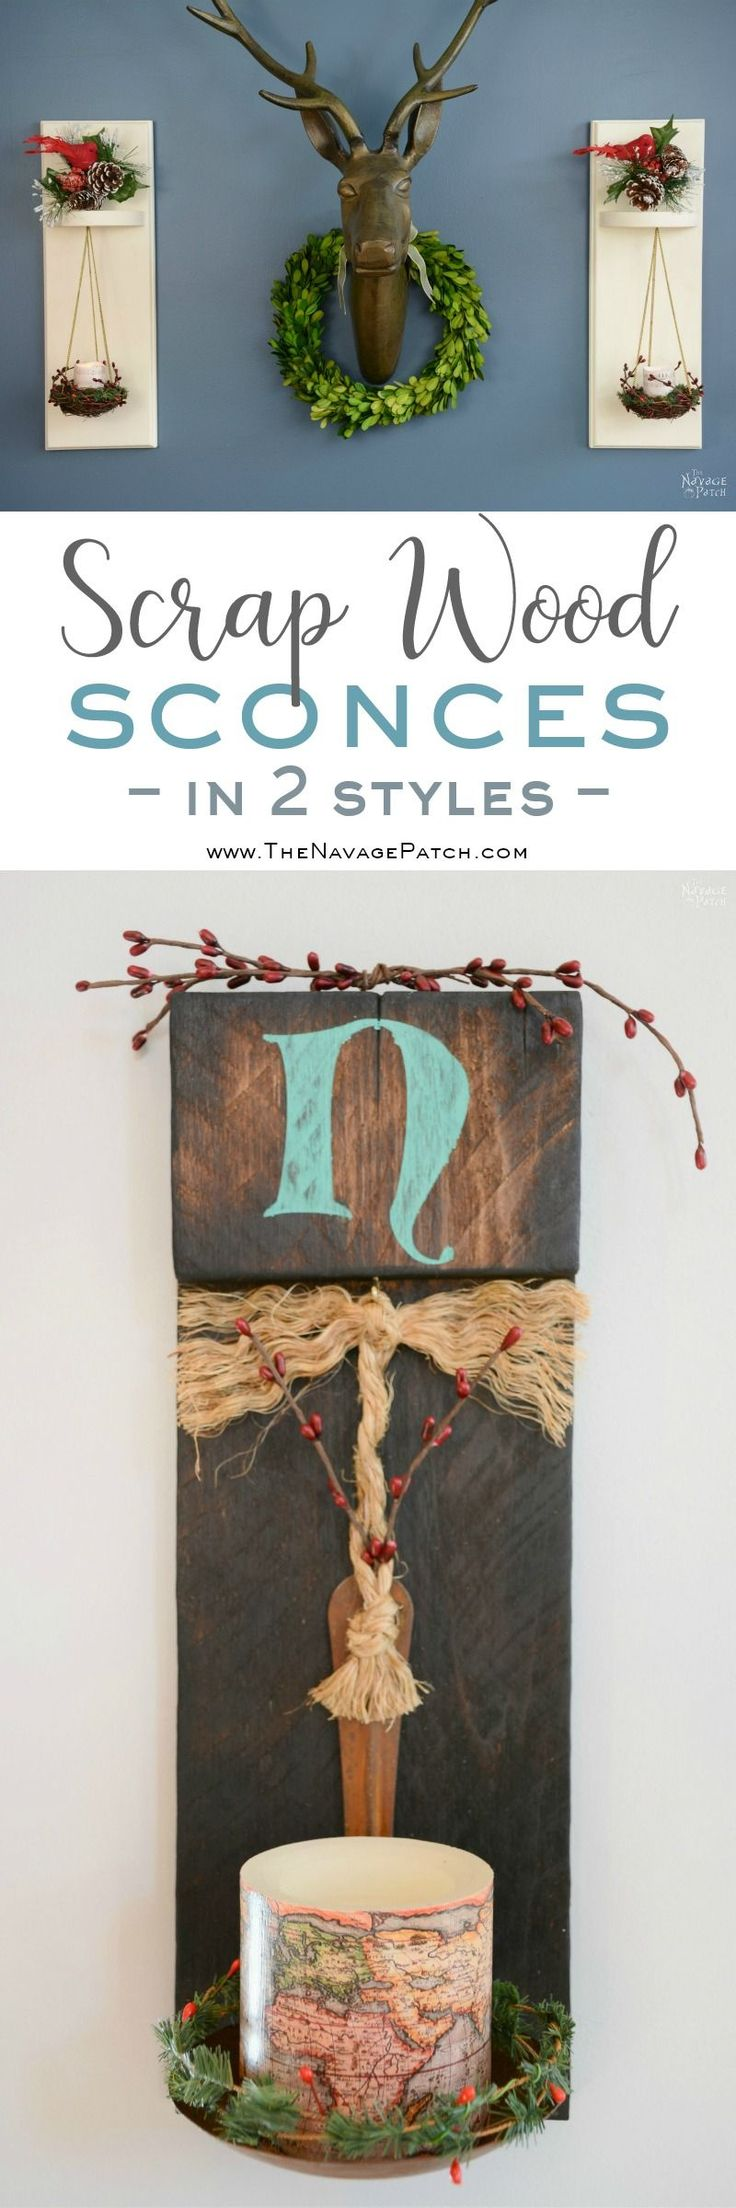 Scrap Wood Sconces | How to make sconces from scrap wood, ladle and bird nest | Farmhouse style home decor | Simple rustic wood sconces | Easy wood burning technique | How to burn wood| Easy woodworking | Upcycled ladle and bird nest | How to stencil | TheNavagePatch.com